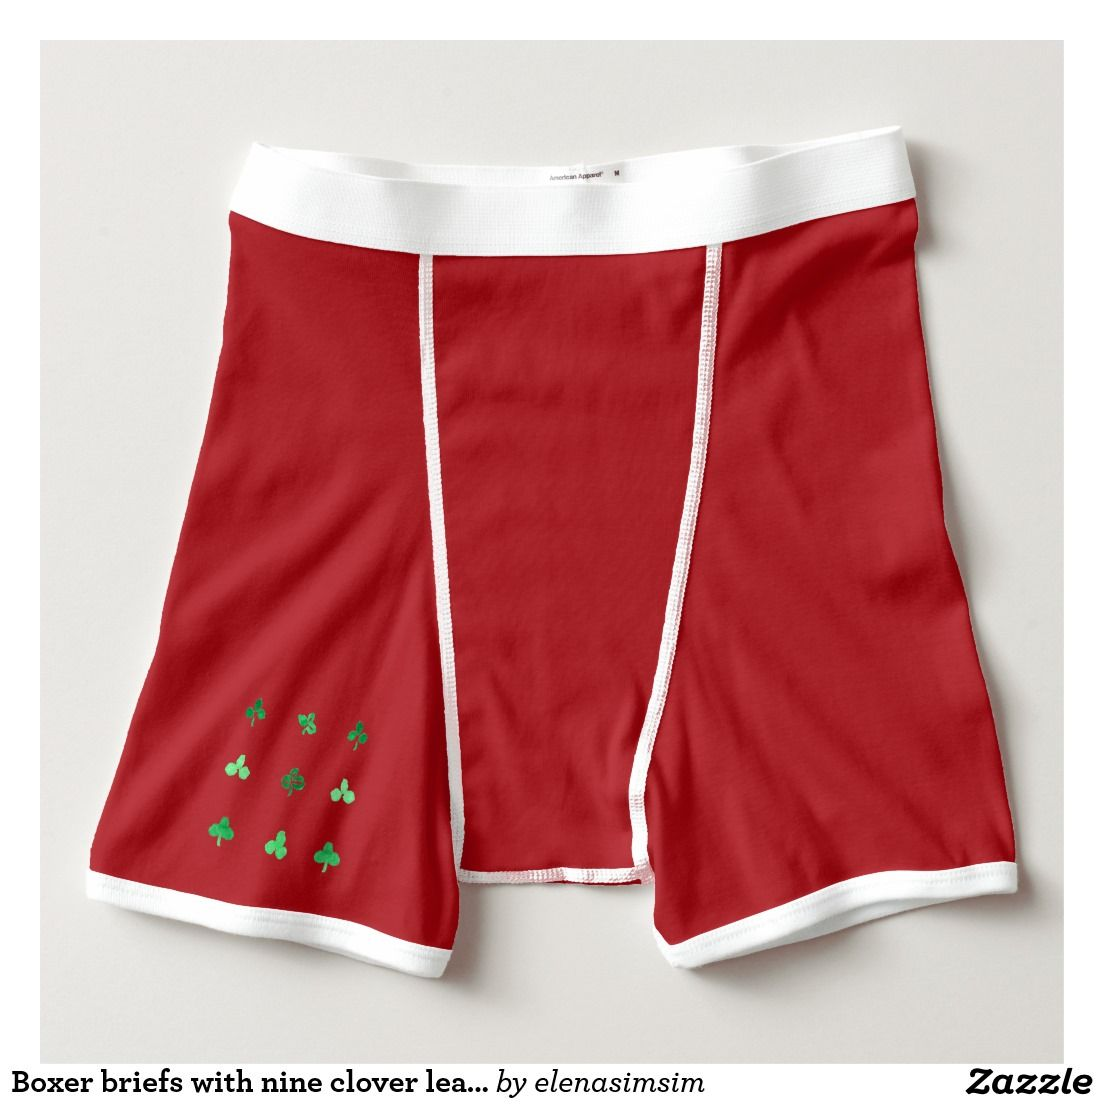 Boxer briefs with nine clover leaves